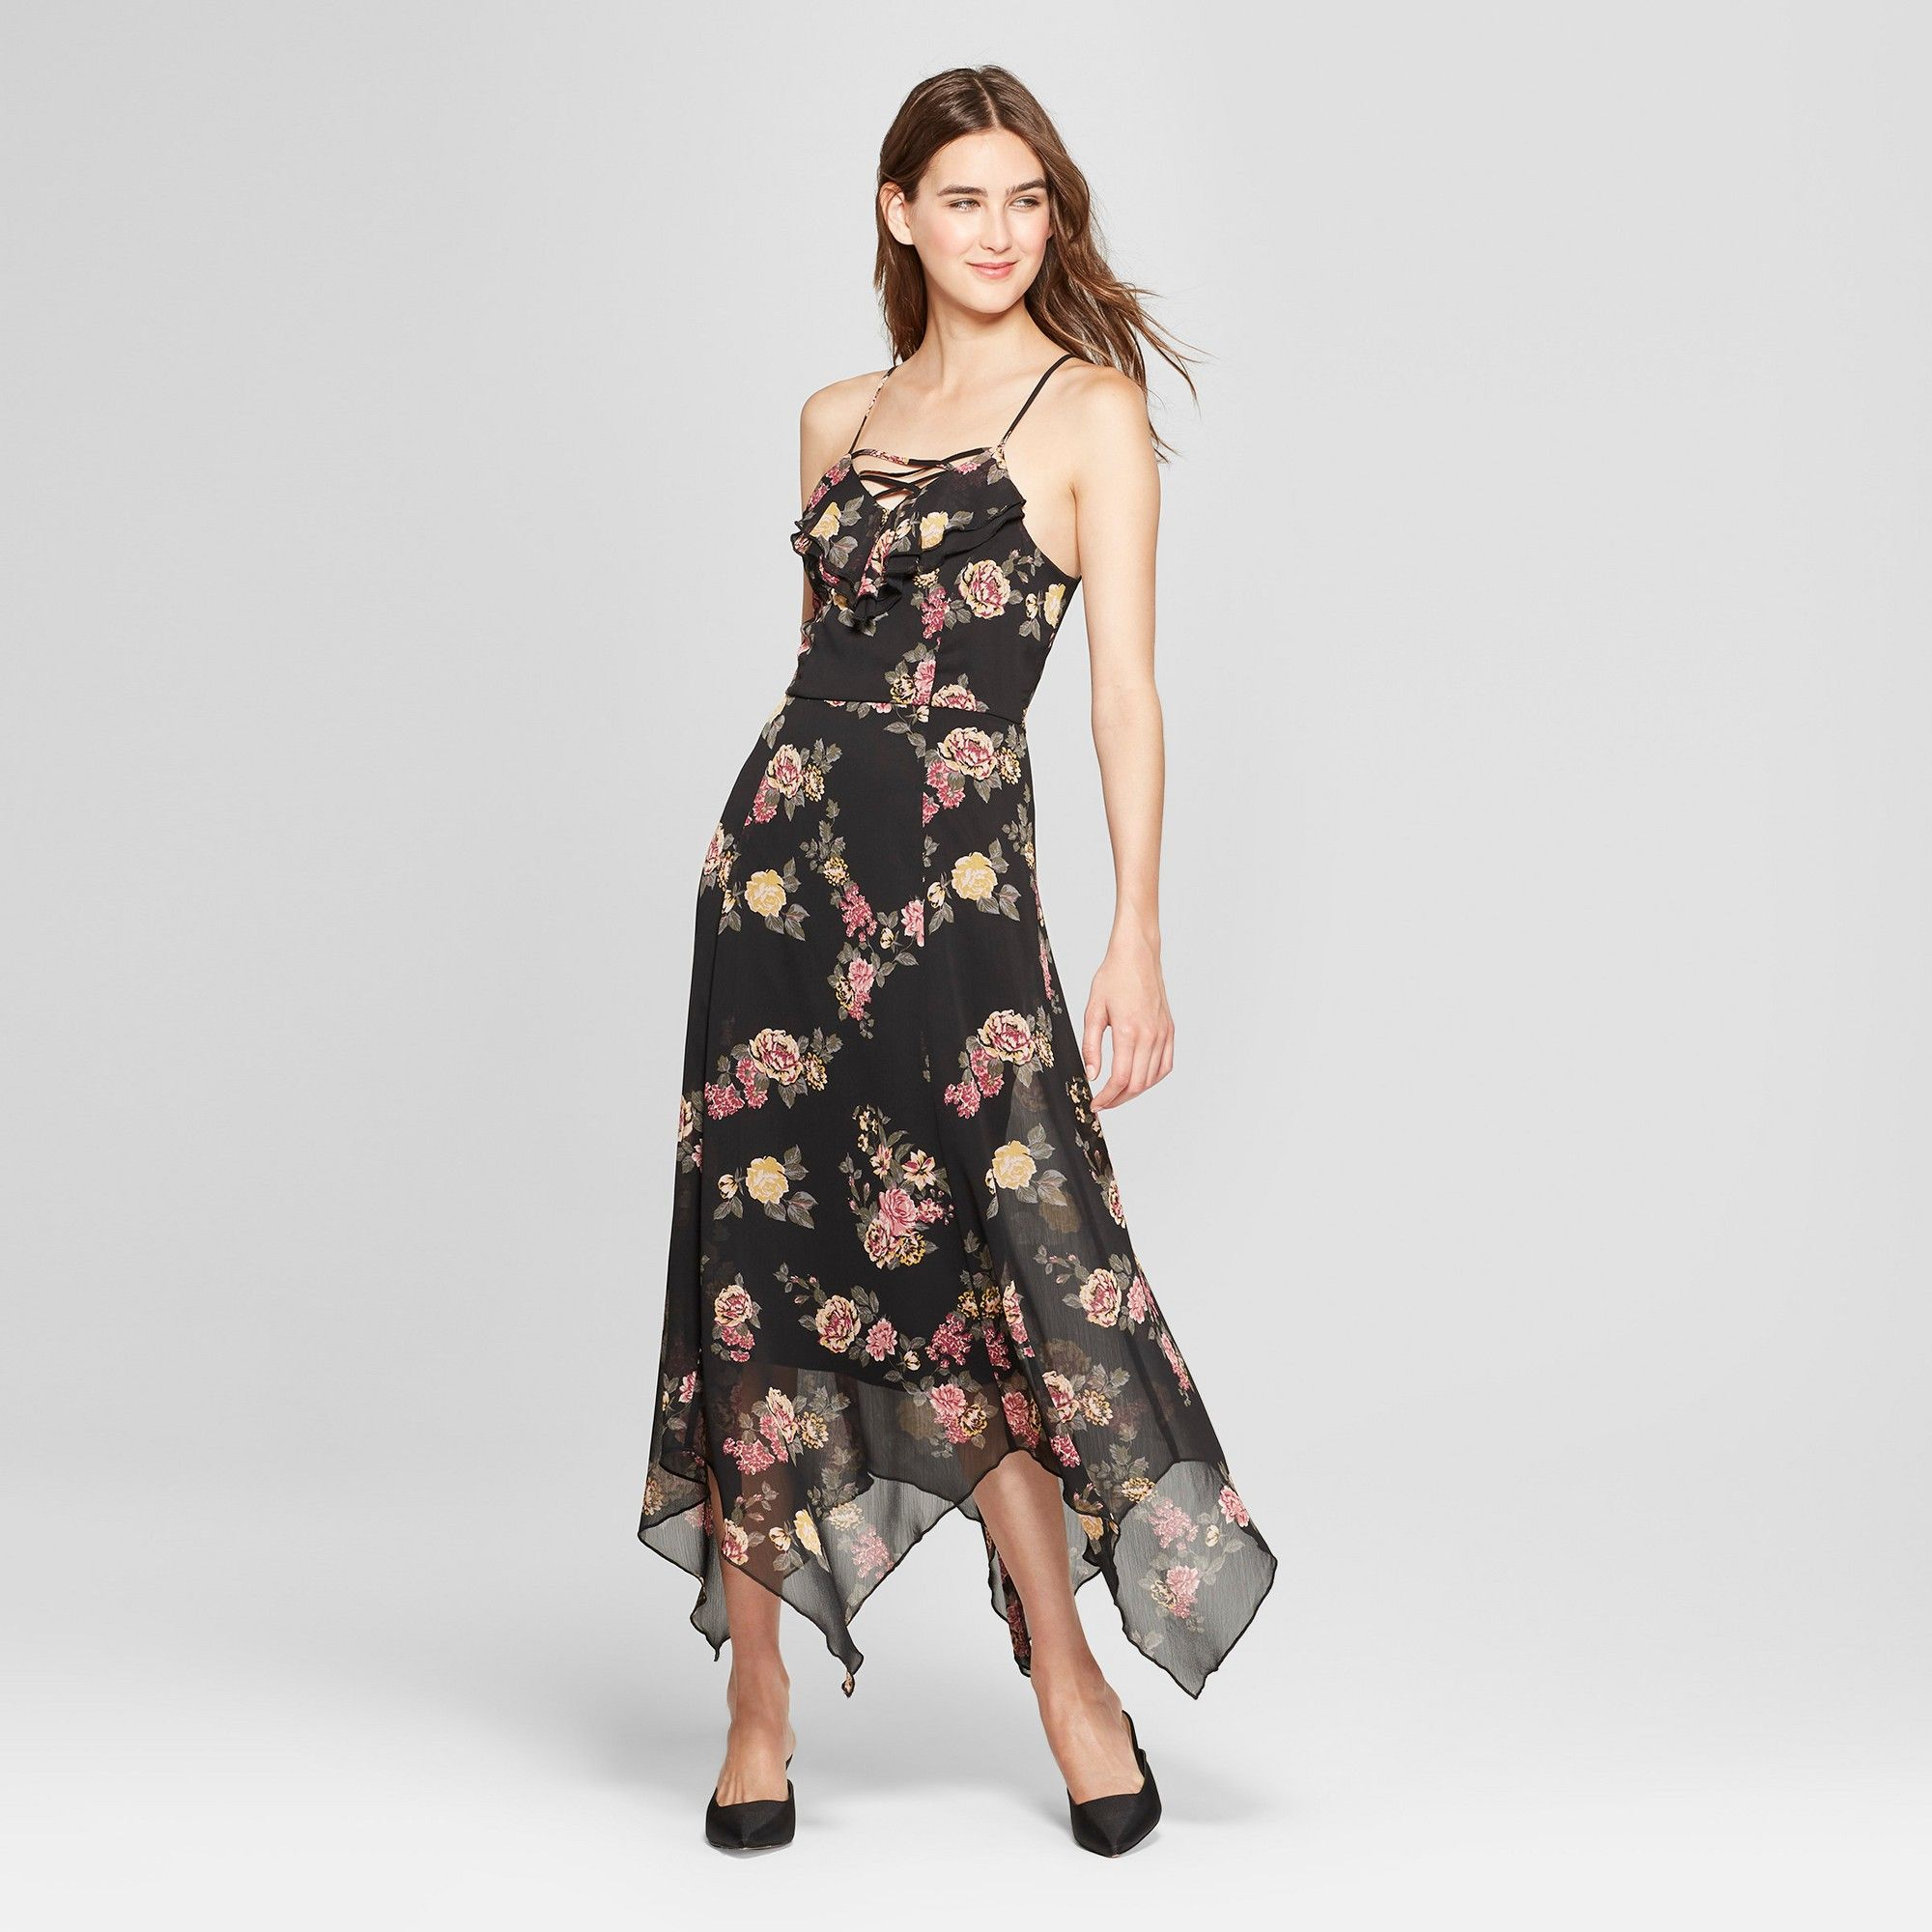 696ef78f5aa2 Women's Floral Print Ruffle Lace-Up Maxi Dress - Almost Famous (Juniors')  Black XL